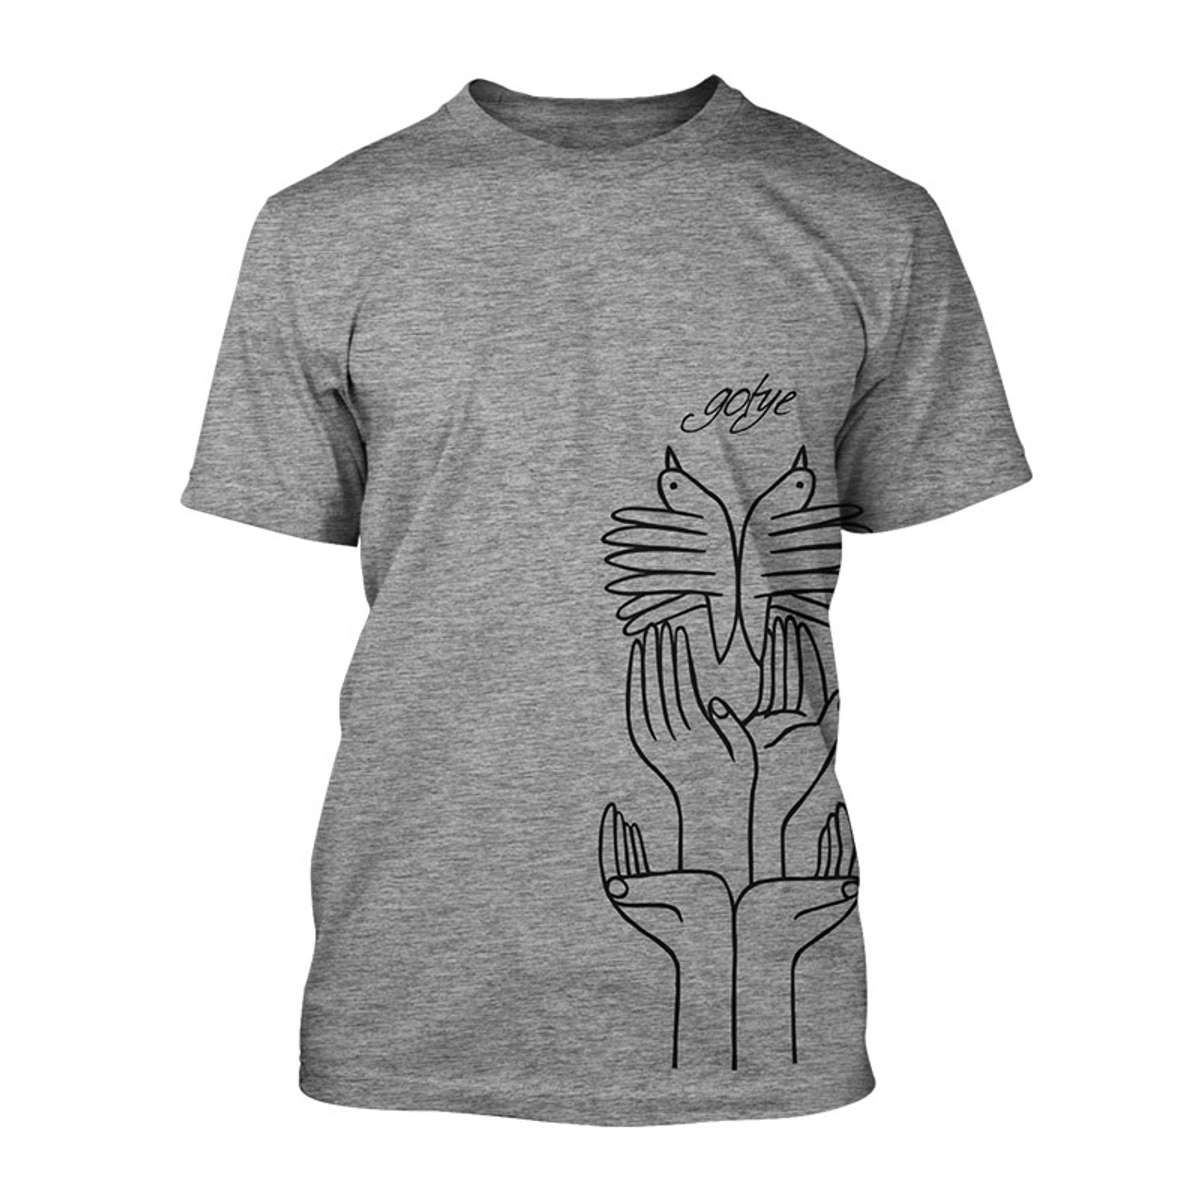 Smoke And Mirrors men's T-shirt - Gotye US